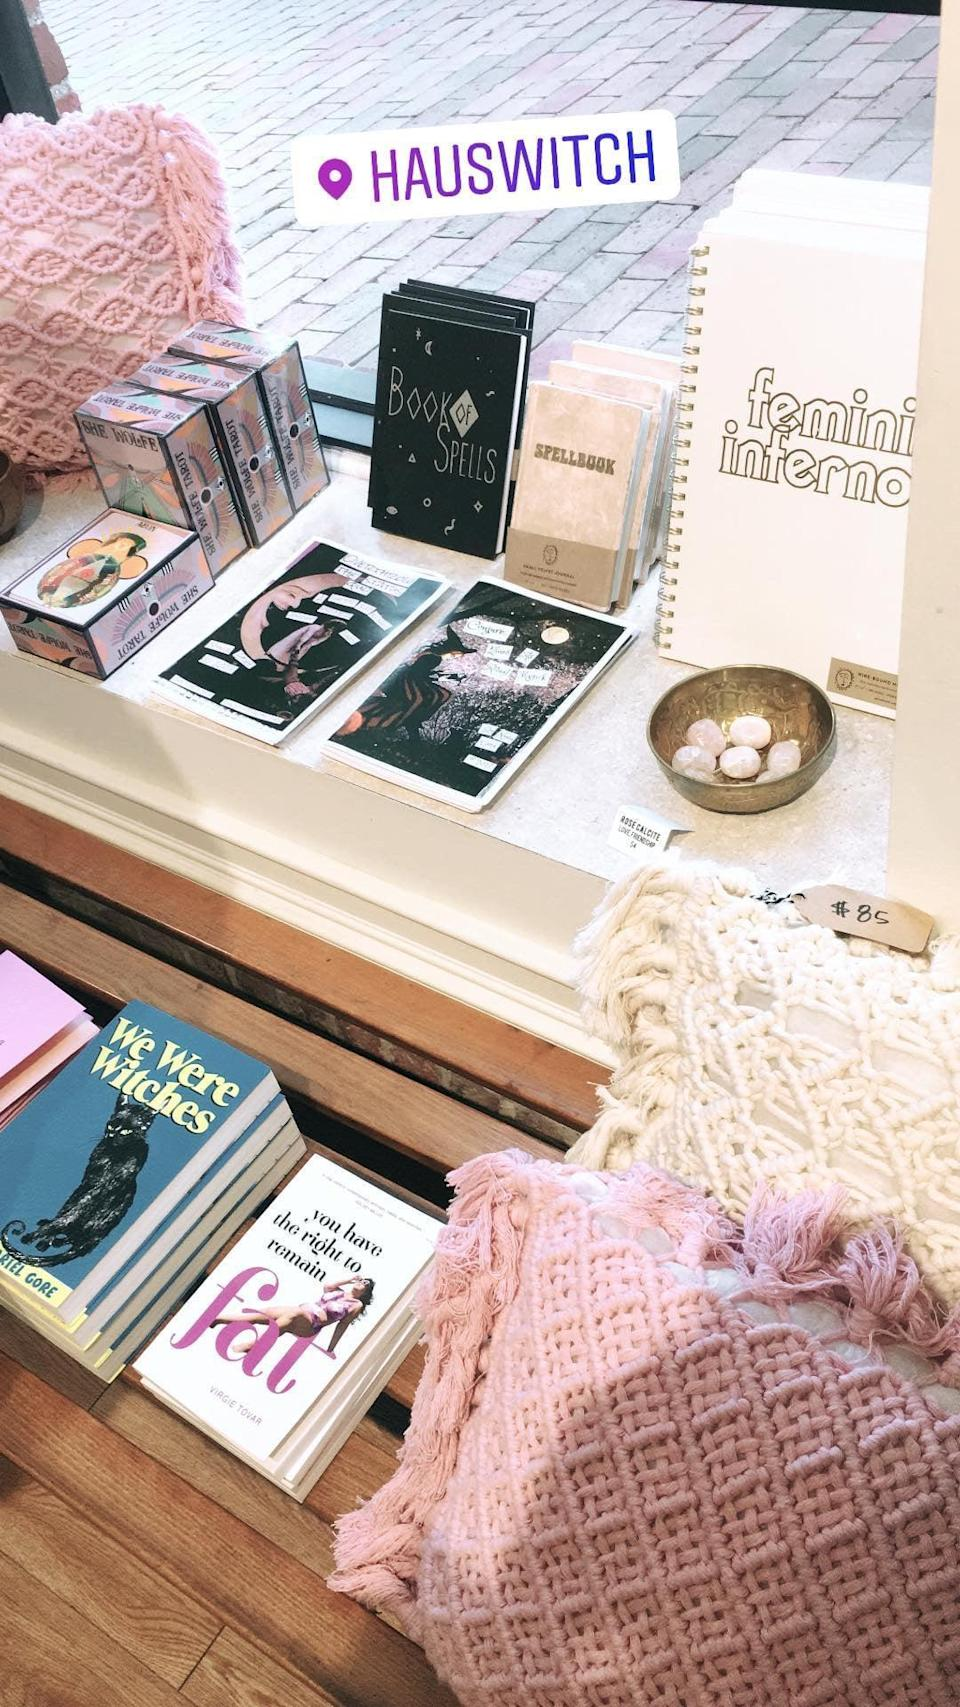 """<p>From fun and modern witch shops like <a href=""""http://hauswitchstore.com/"""" class=""""link rapid-noclick-resp"""" rel=""""nofollow noopener"""" target=""""_blank"""" data-ylk=""""slk:Hauswitch Home + Healing"""">Hauswitch Home + Healing</a> to age-old witch stores like <a href=""""http://www.crowhavencorner.com/"""" class=""""link rapid-noclick-resp"""" rel=""""nofollow noopener"""" target=""""_blank"""" data-ylk=""""slk:Crow Haven Corner"""">Crow Haven Corner</a> (a must-see) to <a href=""""http://thecovenscottage.com/"""" class=""""link rapid-noclick-resp"""" rel=""""nofollow noopener"""" target=""""_blank"""" data-ylk=""""slk:Coven's Cottage"""">Coven's Cottage</a> and more, Salem's downtown is filled with trinkets, potions, spells, and goodies that'll leave you with some memorable keepsakes. Hint: don't get distracted by all the stuff the vendors are selling (they're everywhere); the stores are where it's at! </p>"""